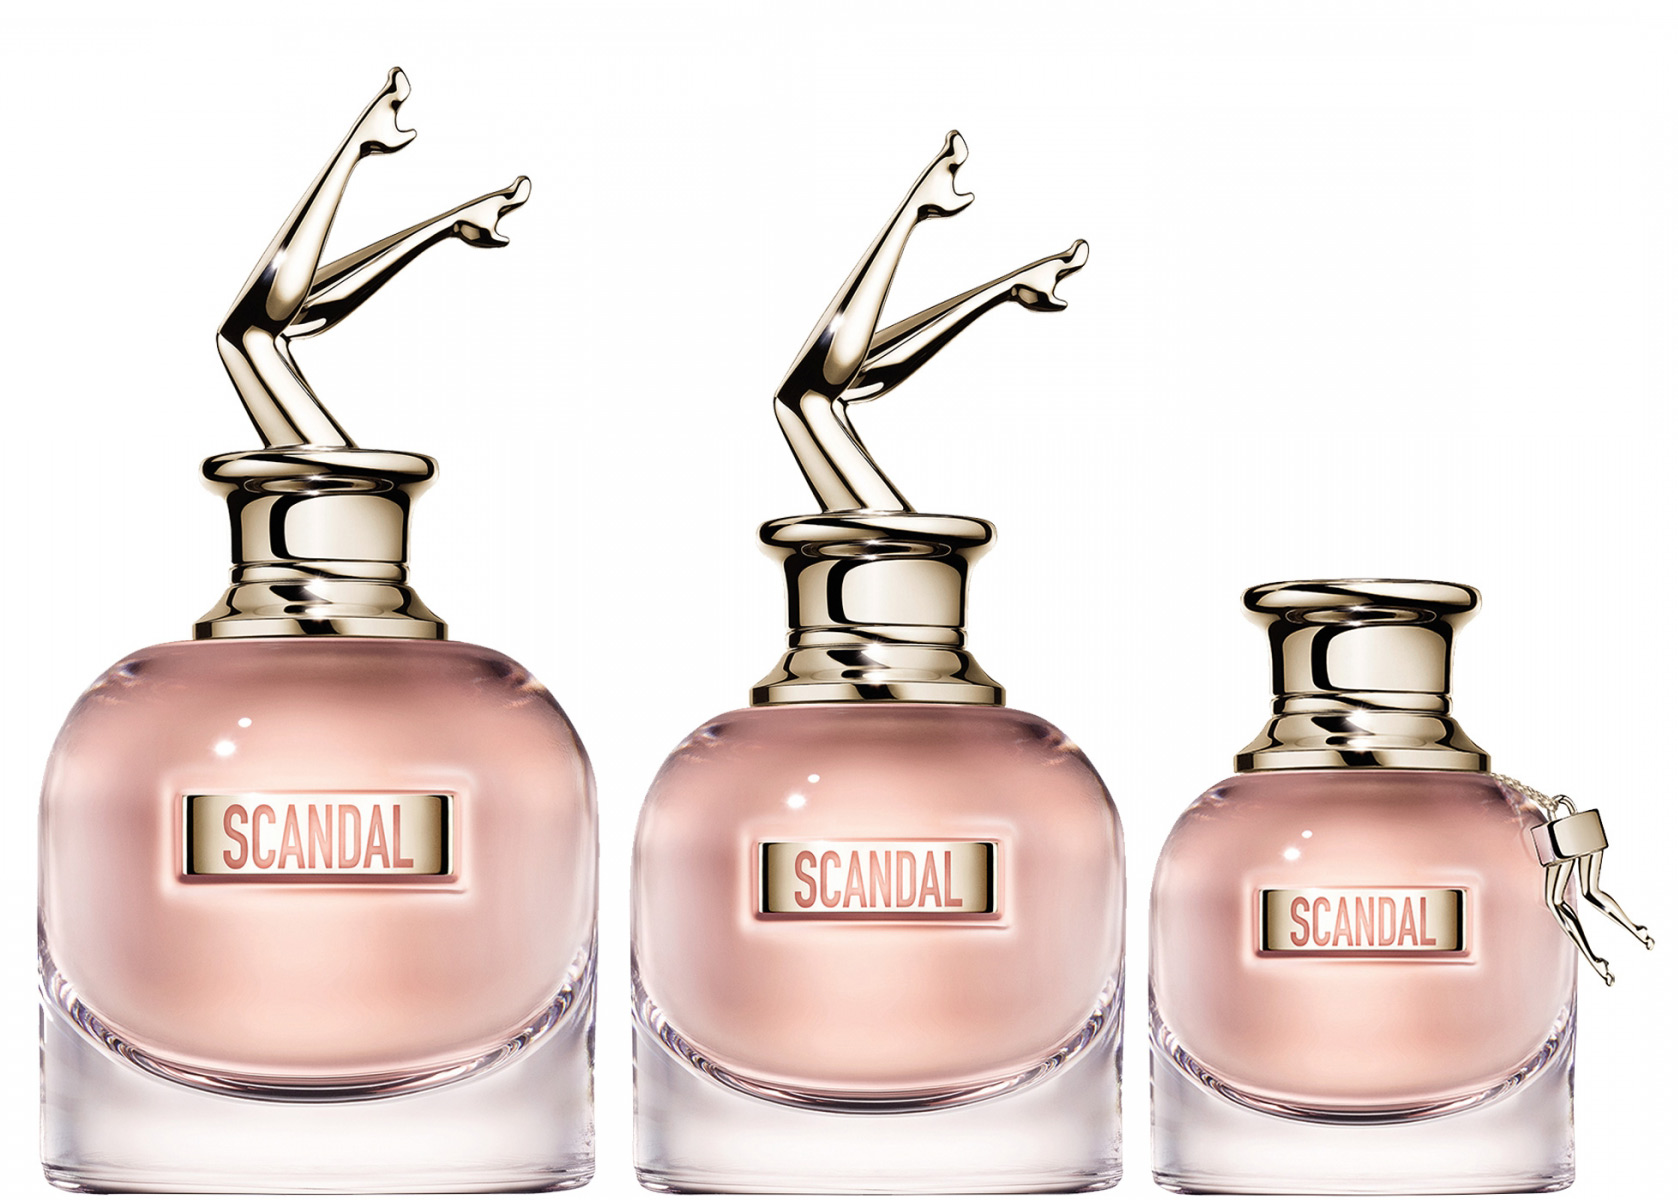 scandal jean paul gaultier perfume a new fragrance for women 2017. Black Bedroom Furniture Sets. Home Design Ideas